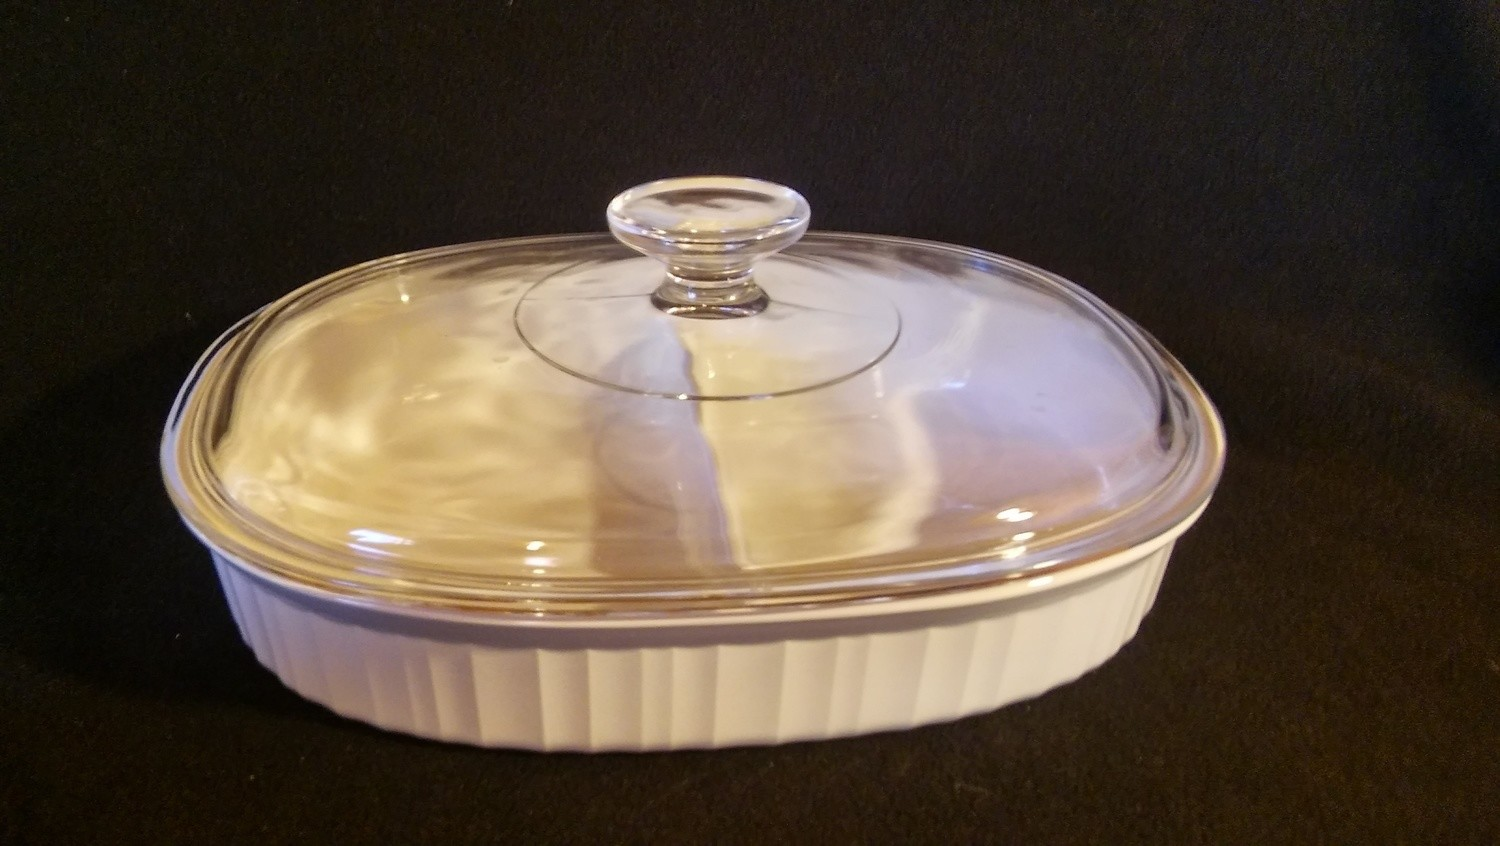 Corning Ware, Oval Covered Divided Casserole Dish, French White Pattern